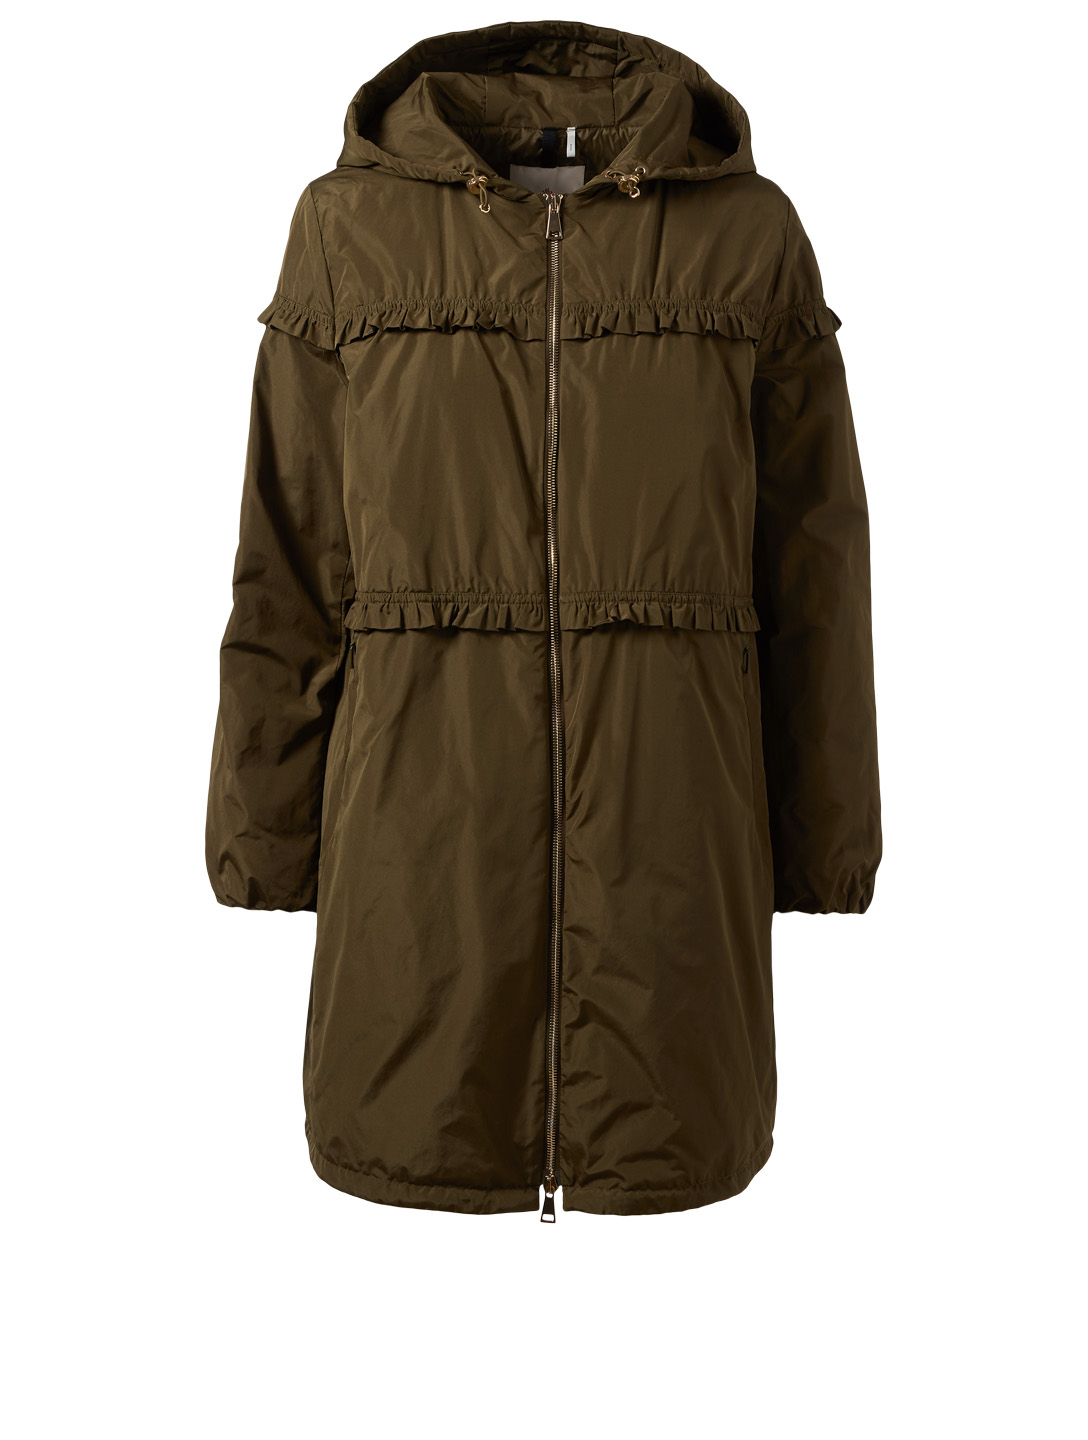 39ba2bb5d261 MONCLER Luxembourg Jacket With Ruffle Trim   Holt Renfrew